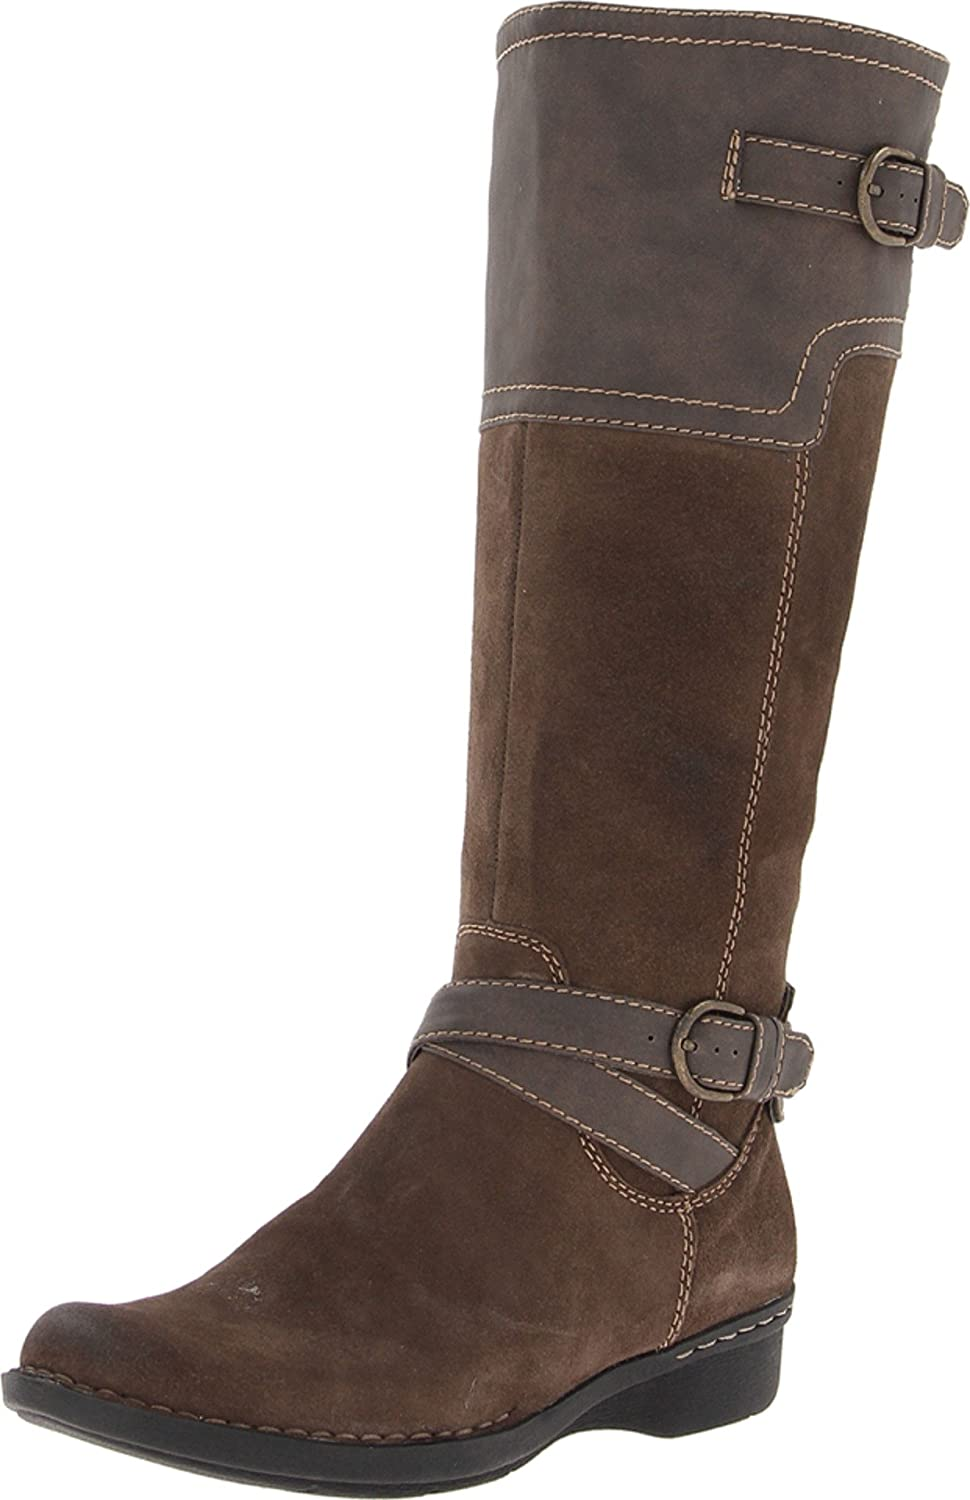 Amazon.com | CLARKS Whistle Woven Womens boot Taupe 11-MEDIUM | Knee-High